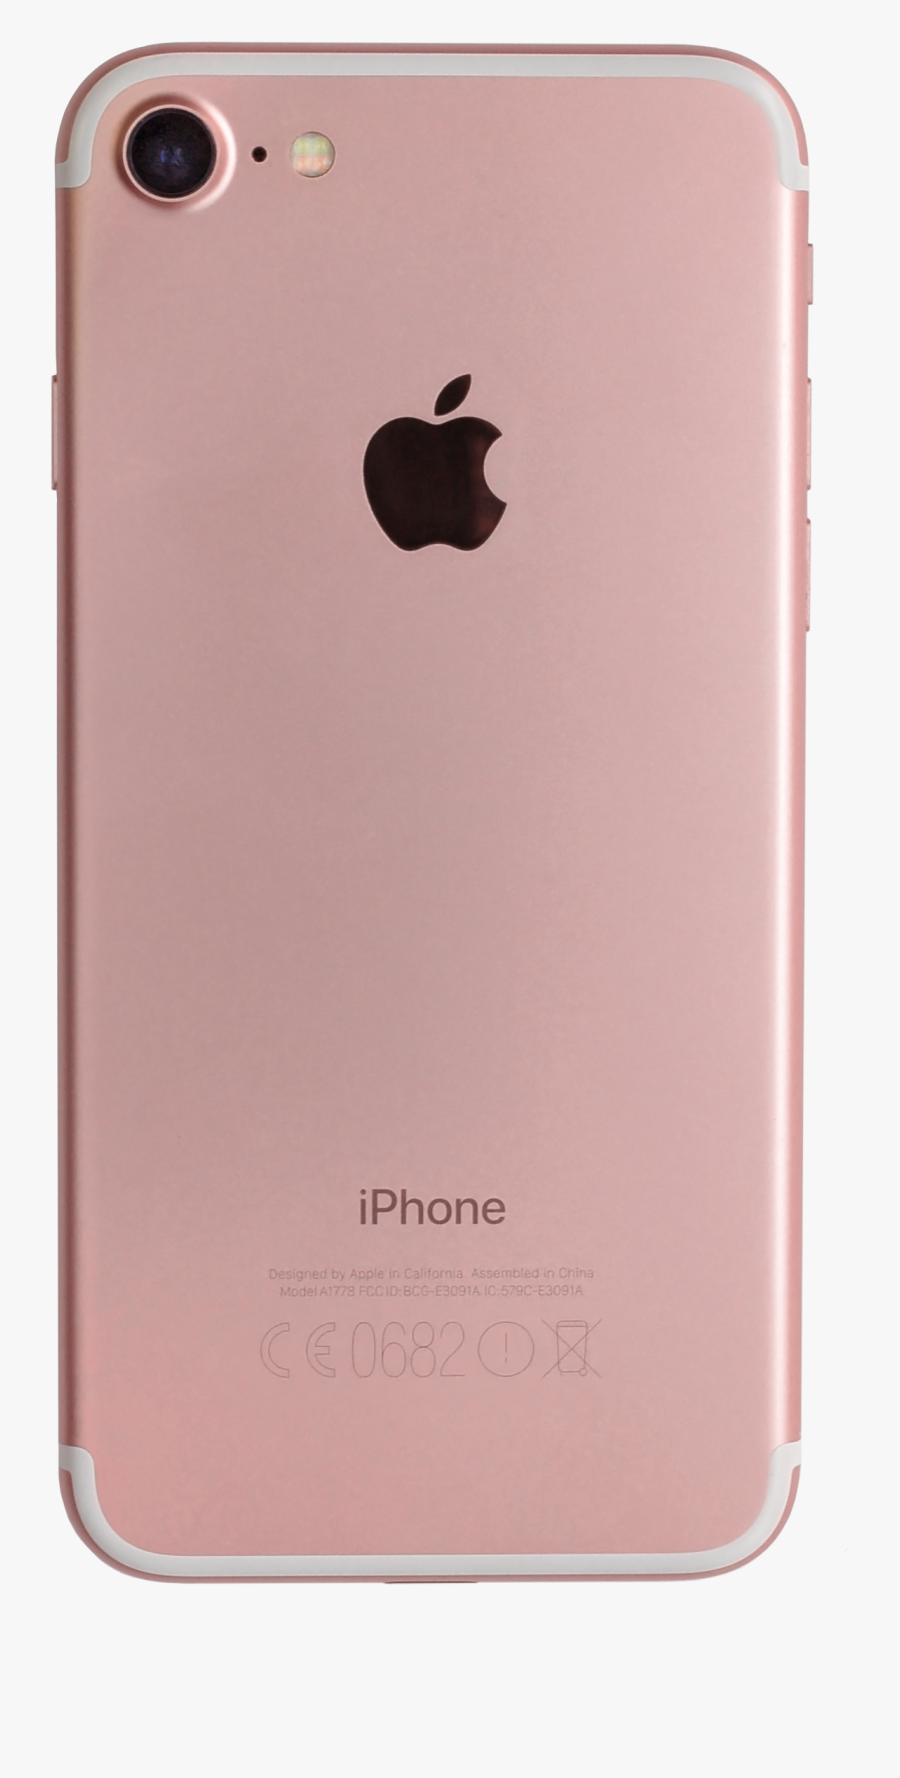 File A Back Retouch - Iphone 7 Rosegold Png, Transparent Clipart